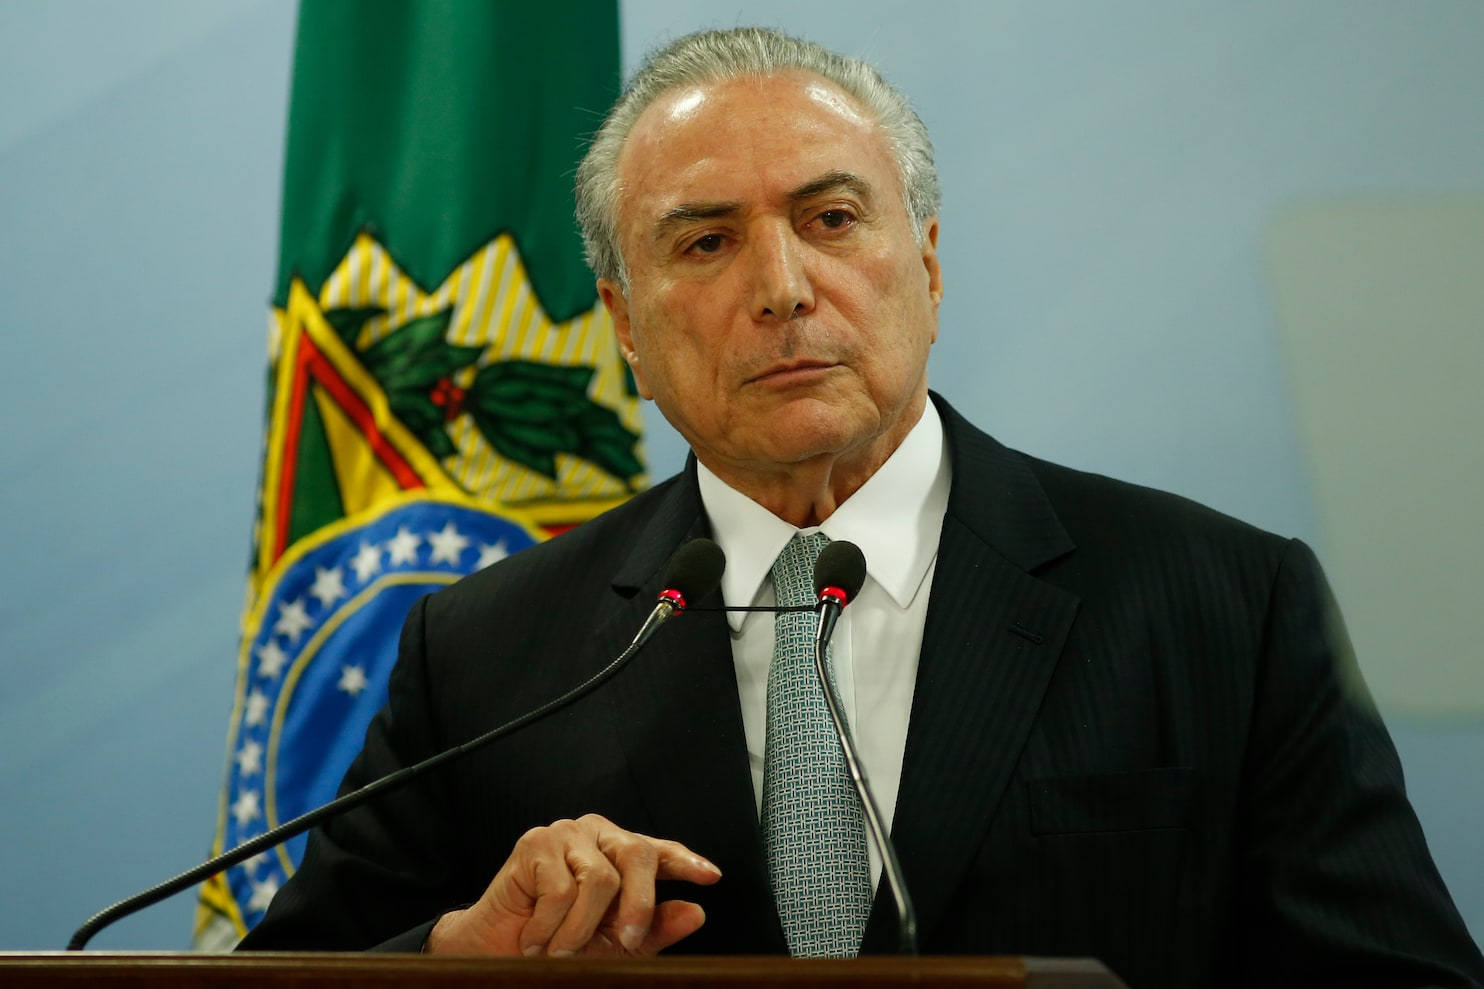 New scandal erupts that threatens to force out Brazilian President Temer - The Washington Post